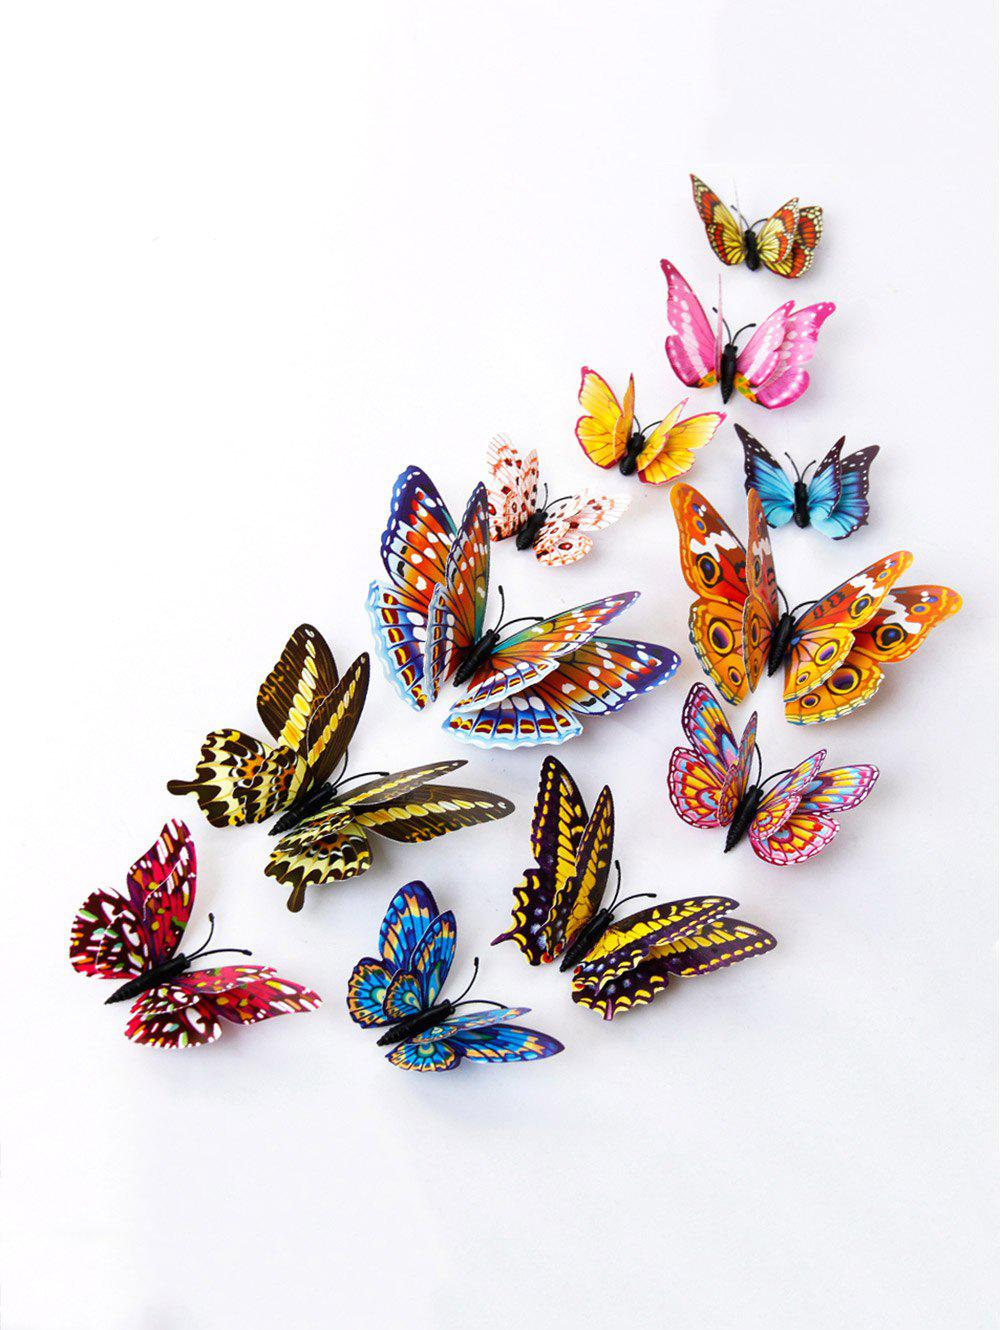 12 PCS DIY Noctilucence 3D Butterfly Wall Sticker - COLORFUL